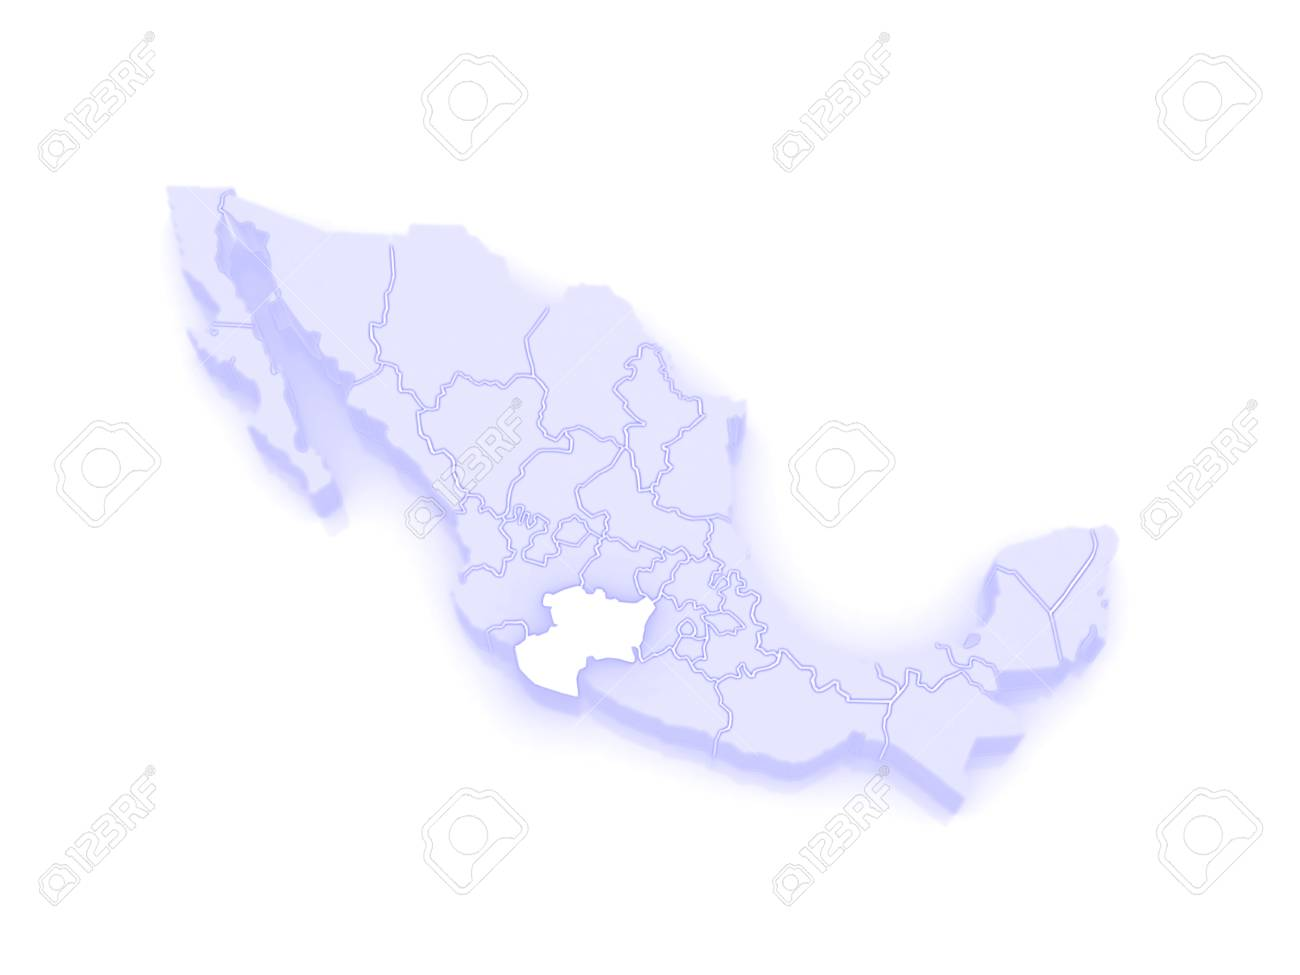 Map Of Michoacan. Mexico. 3d Stock Photo, Picture And Royalty Free ...